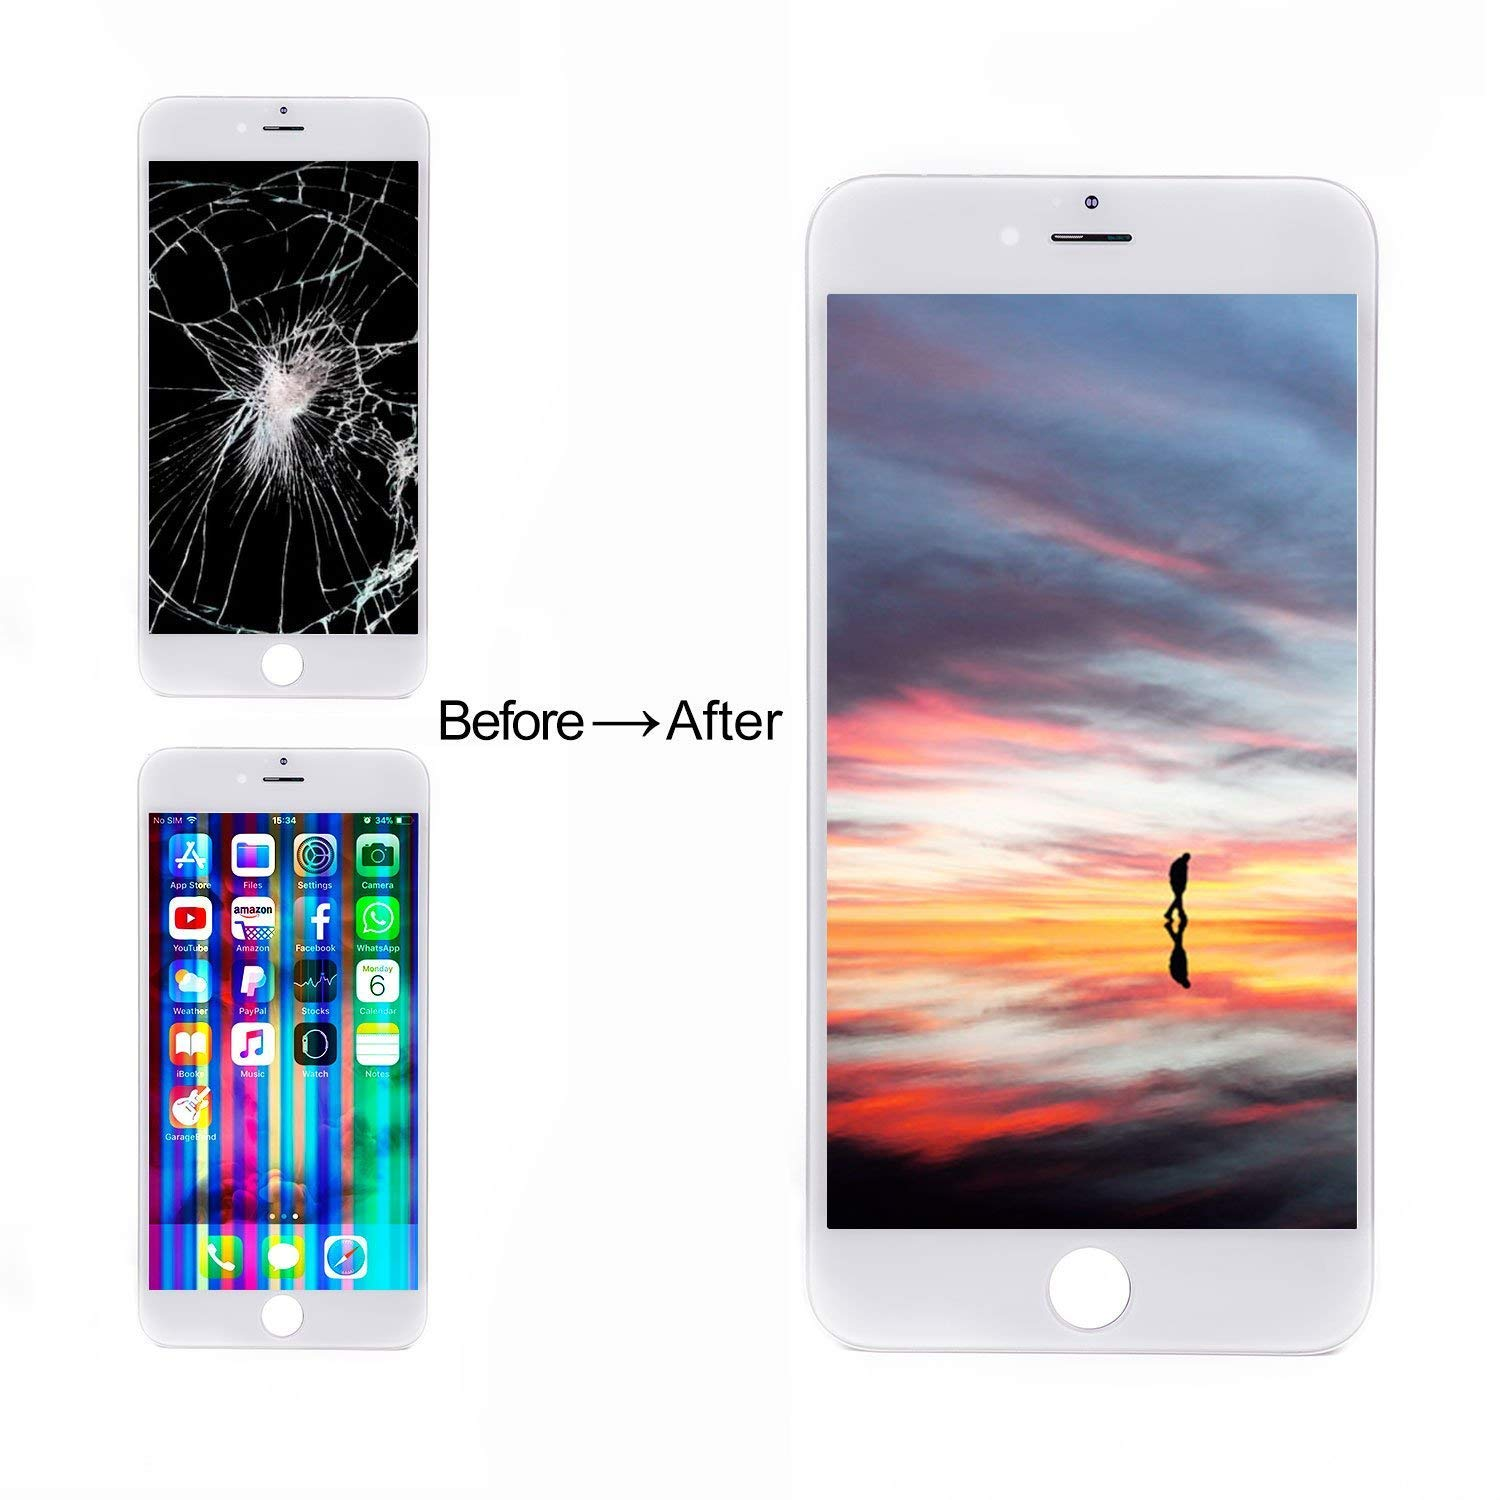 Screen Protector iPhone 8 Plus Screen Black Repair Tools Kit Earpiece Speaker LCD Display Touch Digitizer Assembly Replacement with Front Camera for iPhone 8 Plus Screen Replacement Black 5.5